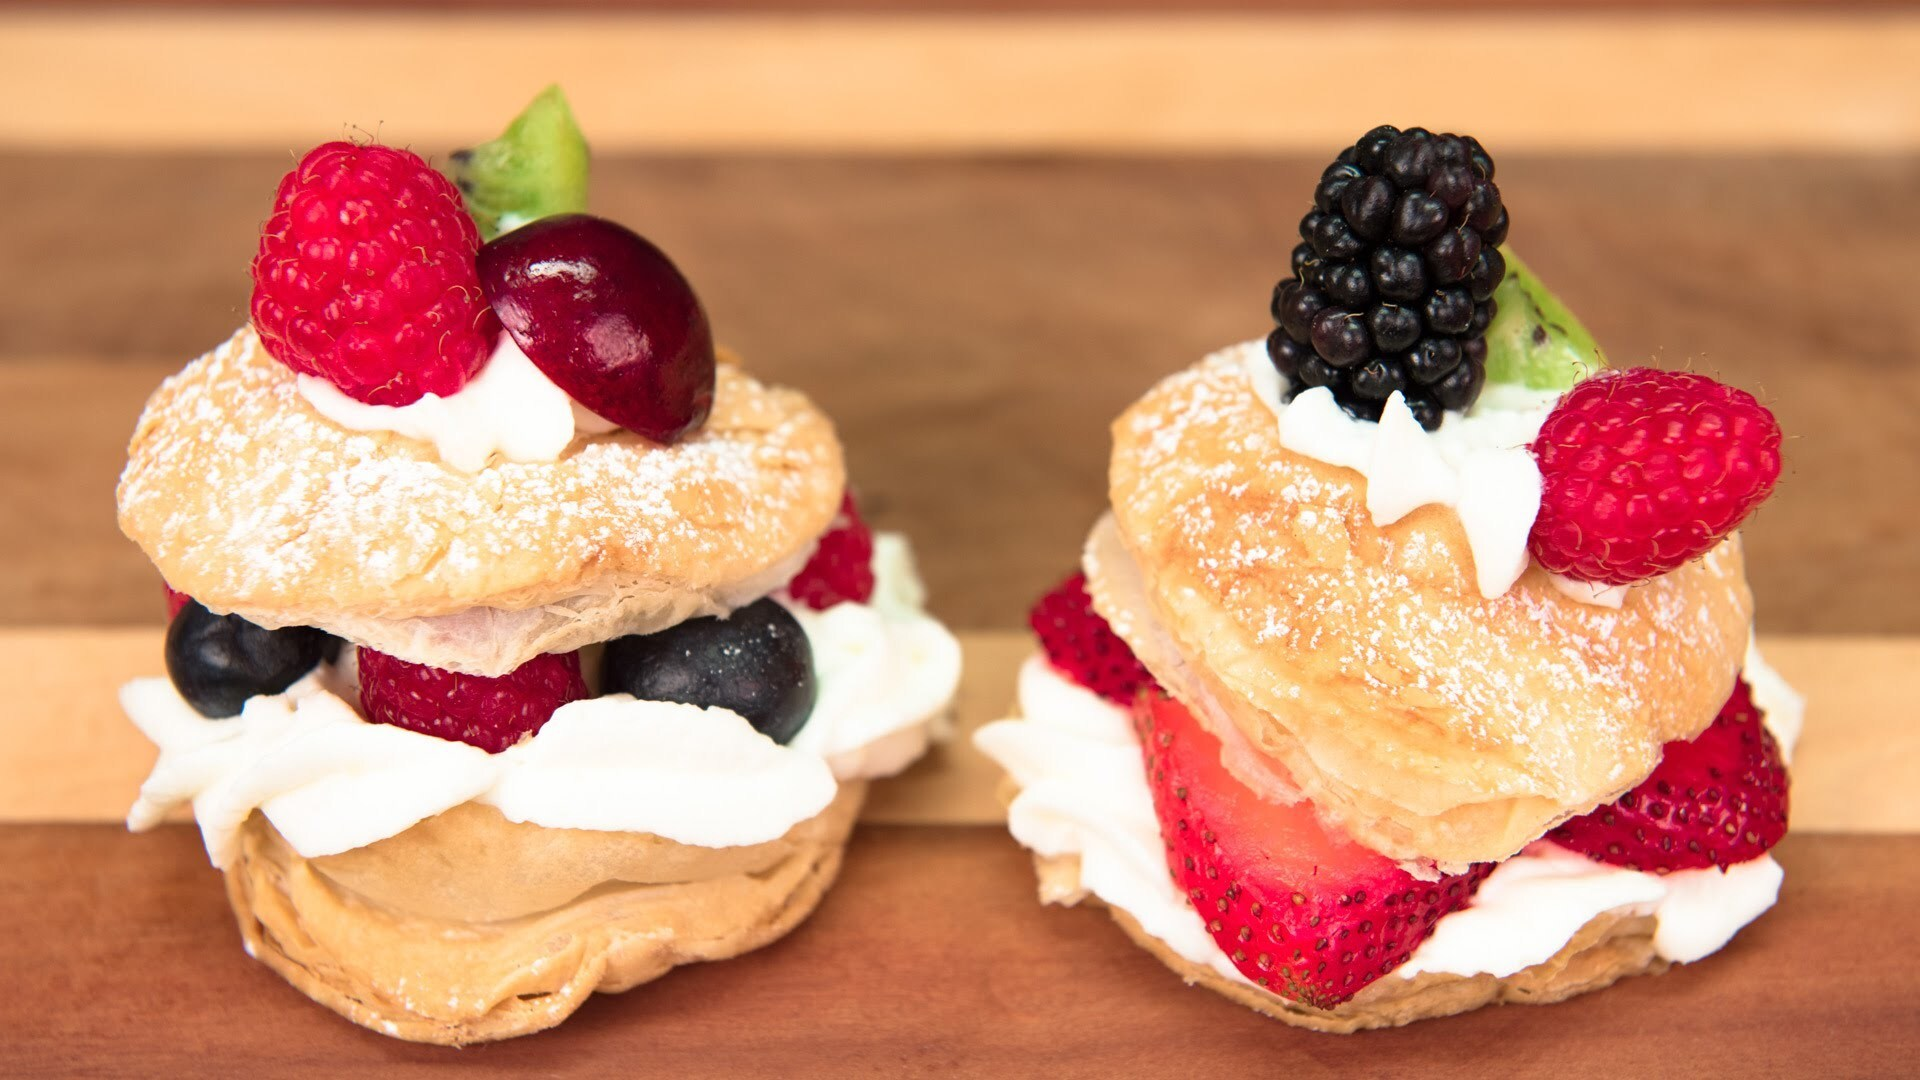 Lemon Cream Puff Recipe from Cookies Cupcakes and Cardio